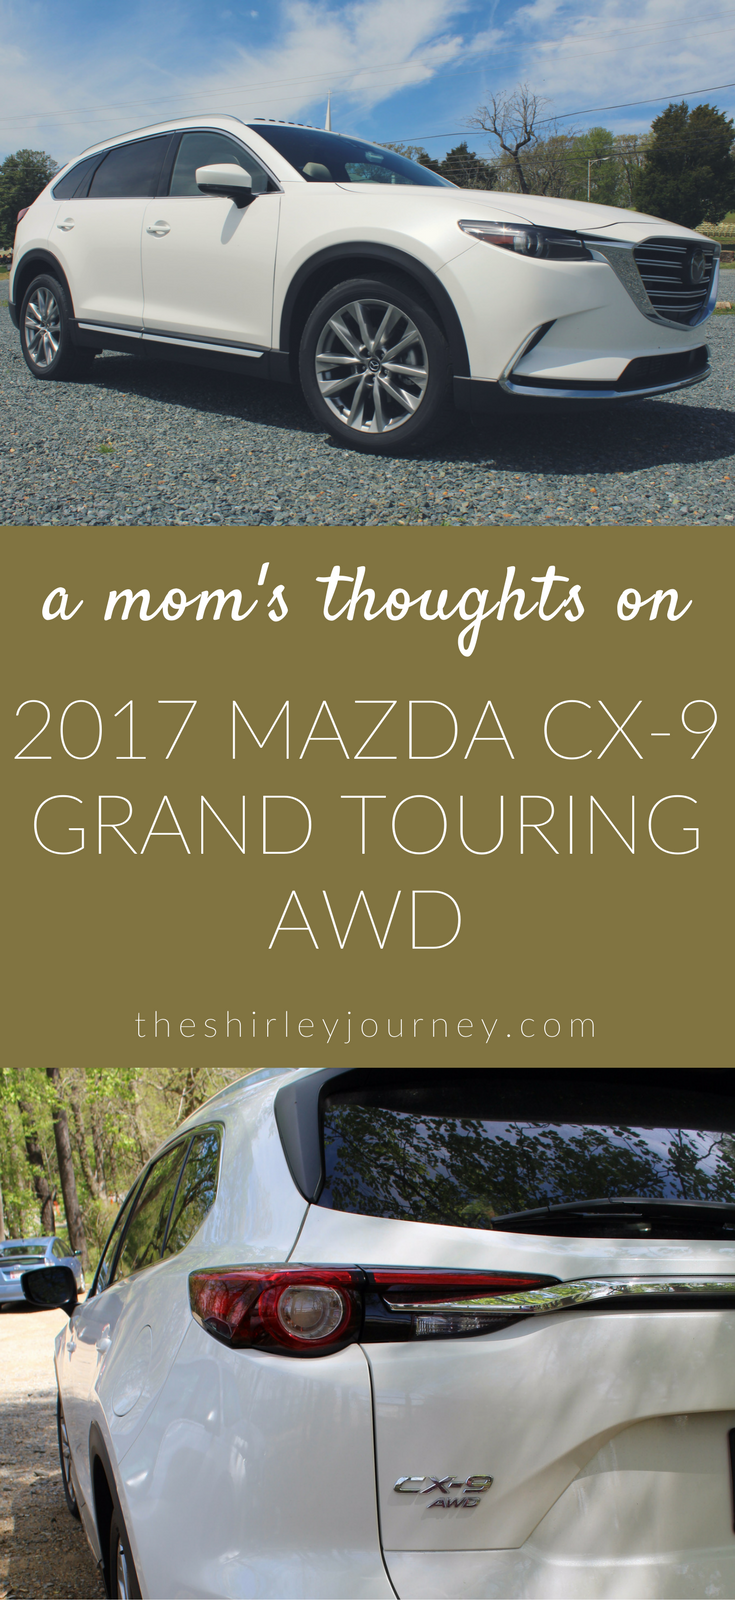 See what a mom of two little ones thinks about the 2017 Mazda CX-9 Grand Touring AWD.